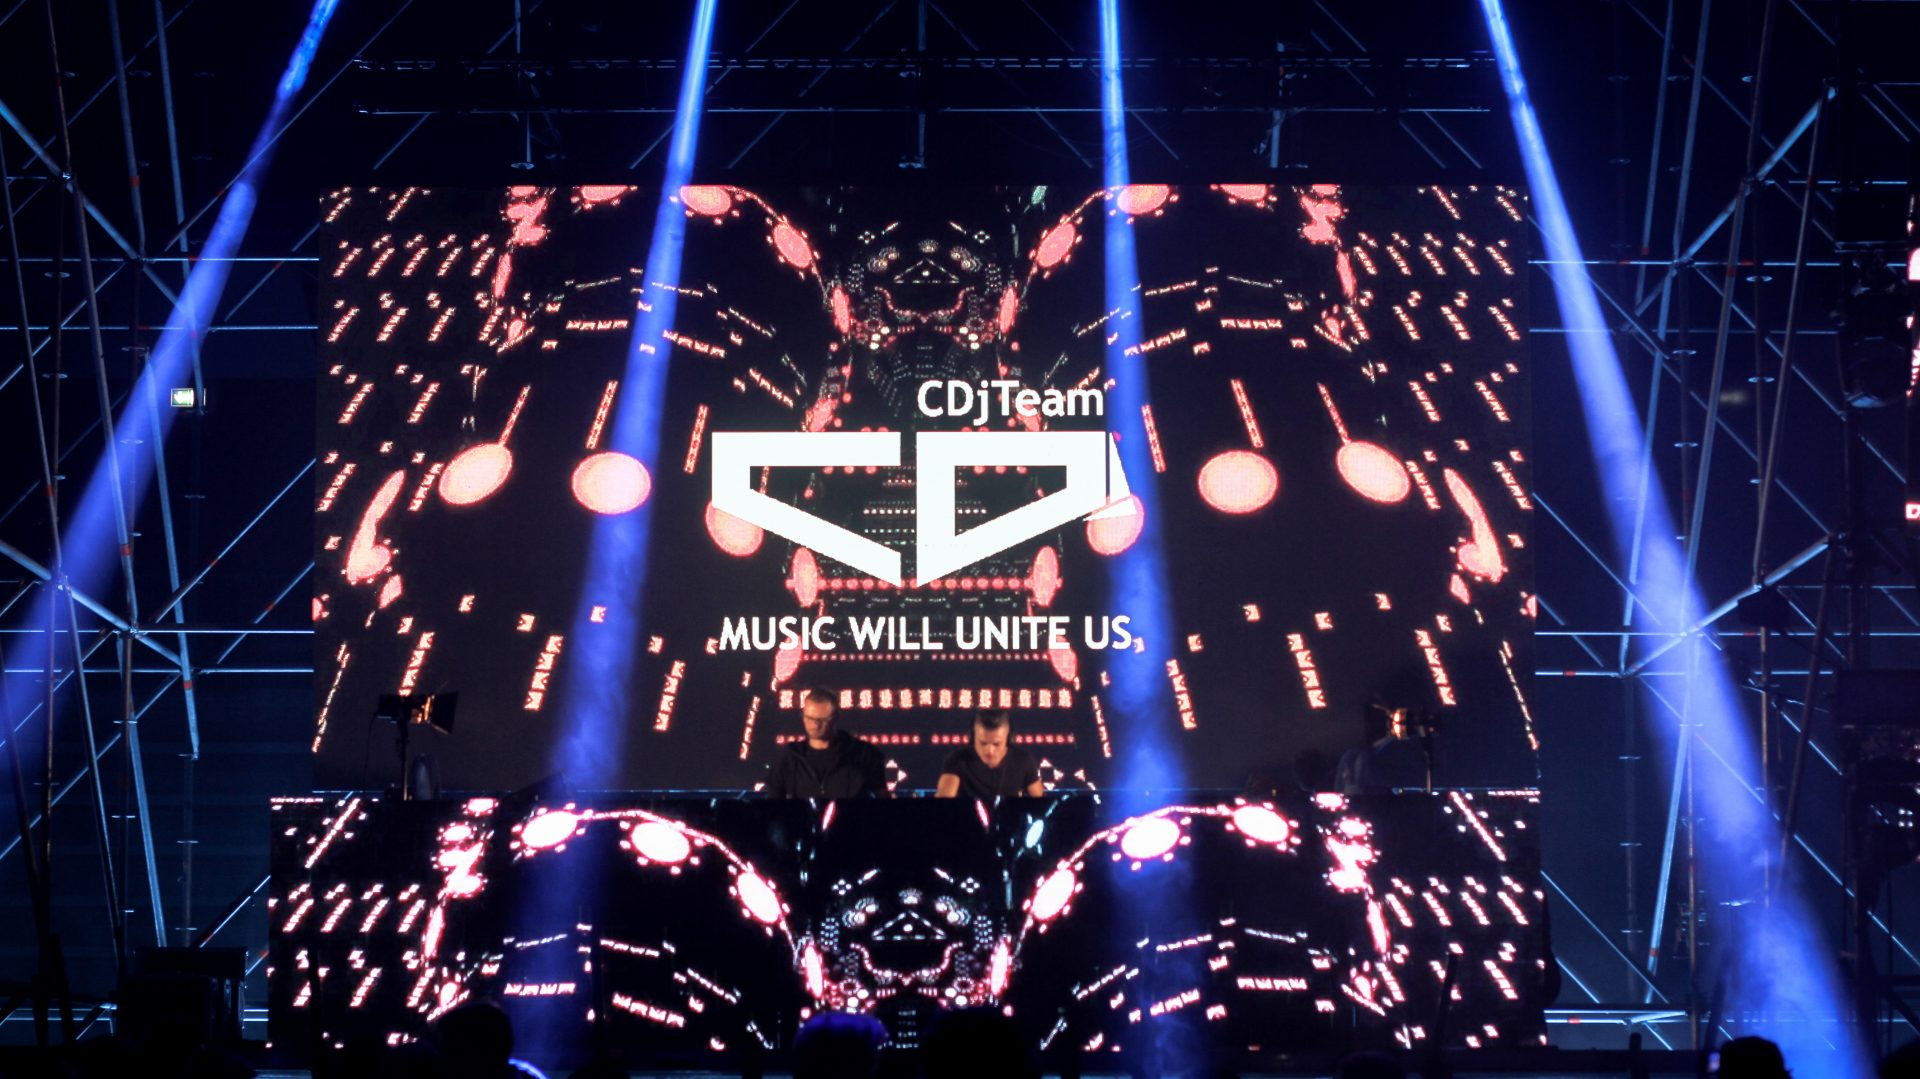 CDj-events / Music and atmosphere for your events